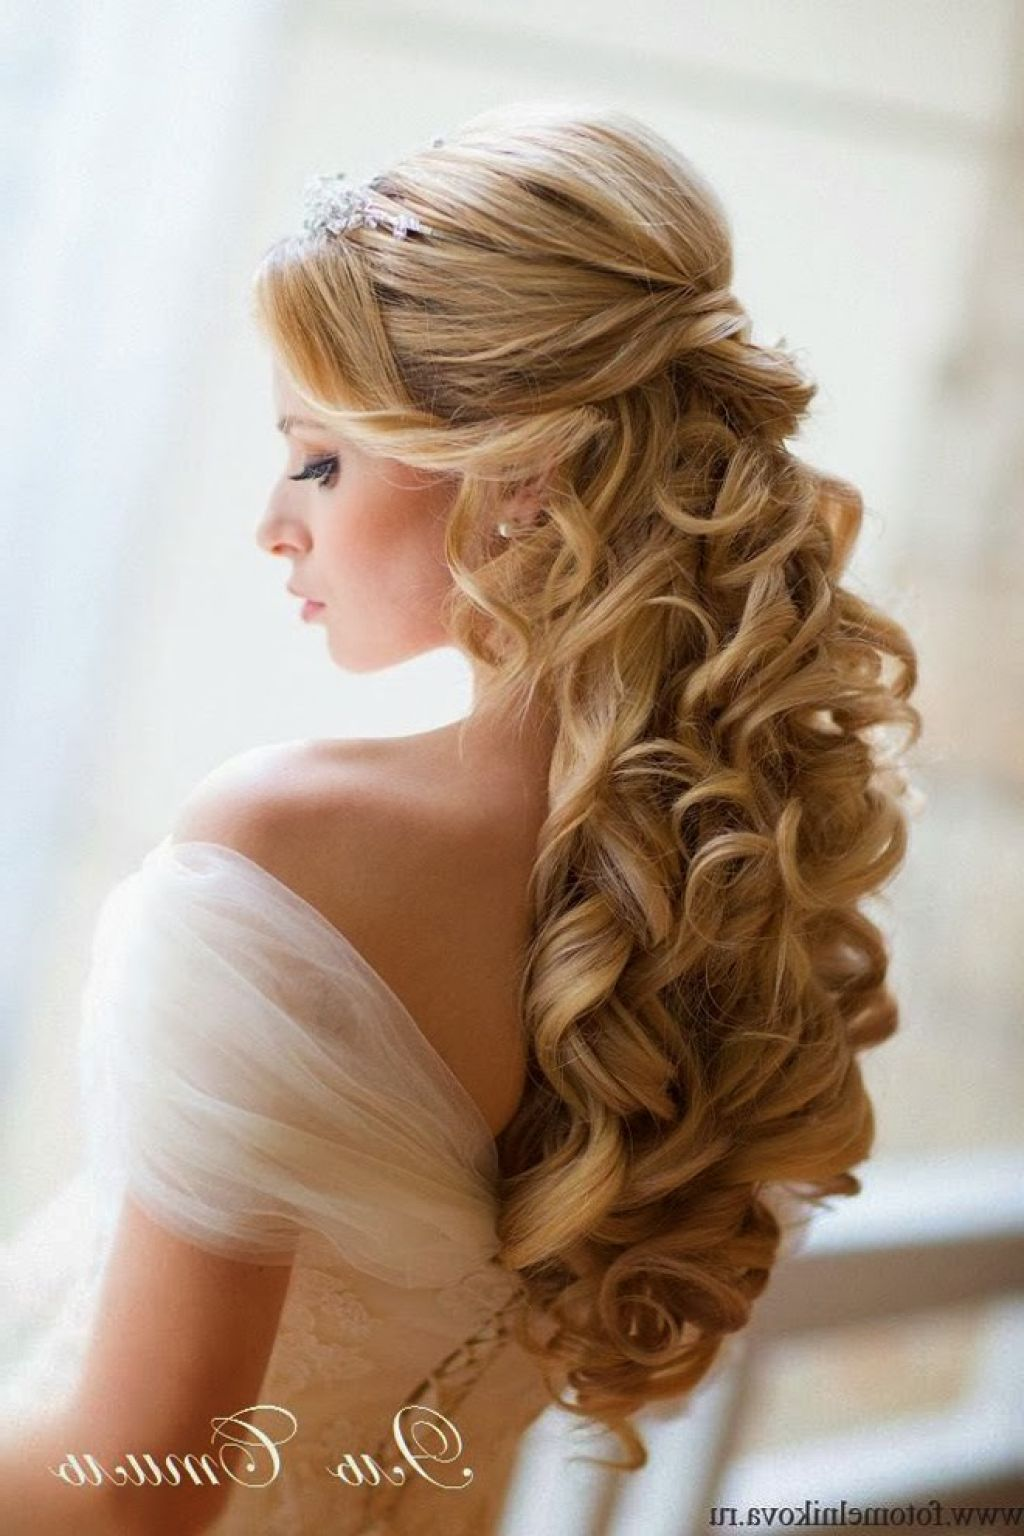 Half up half down prom hairstyles can be elegant and sophisticated